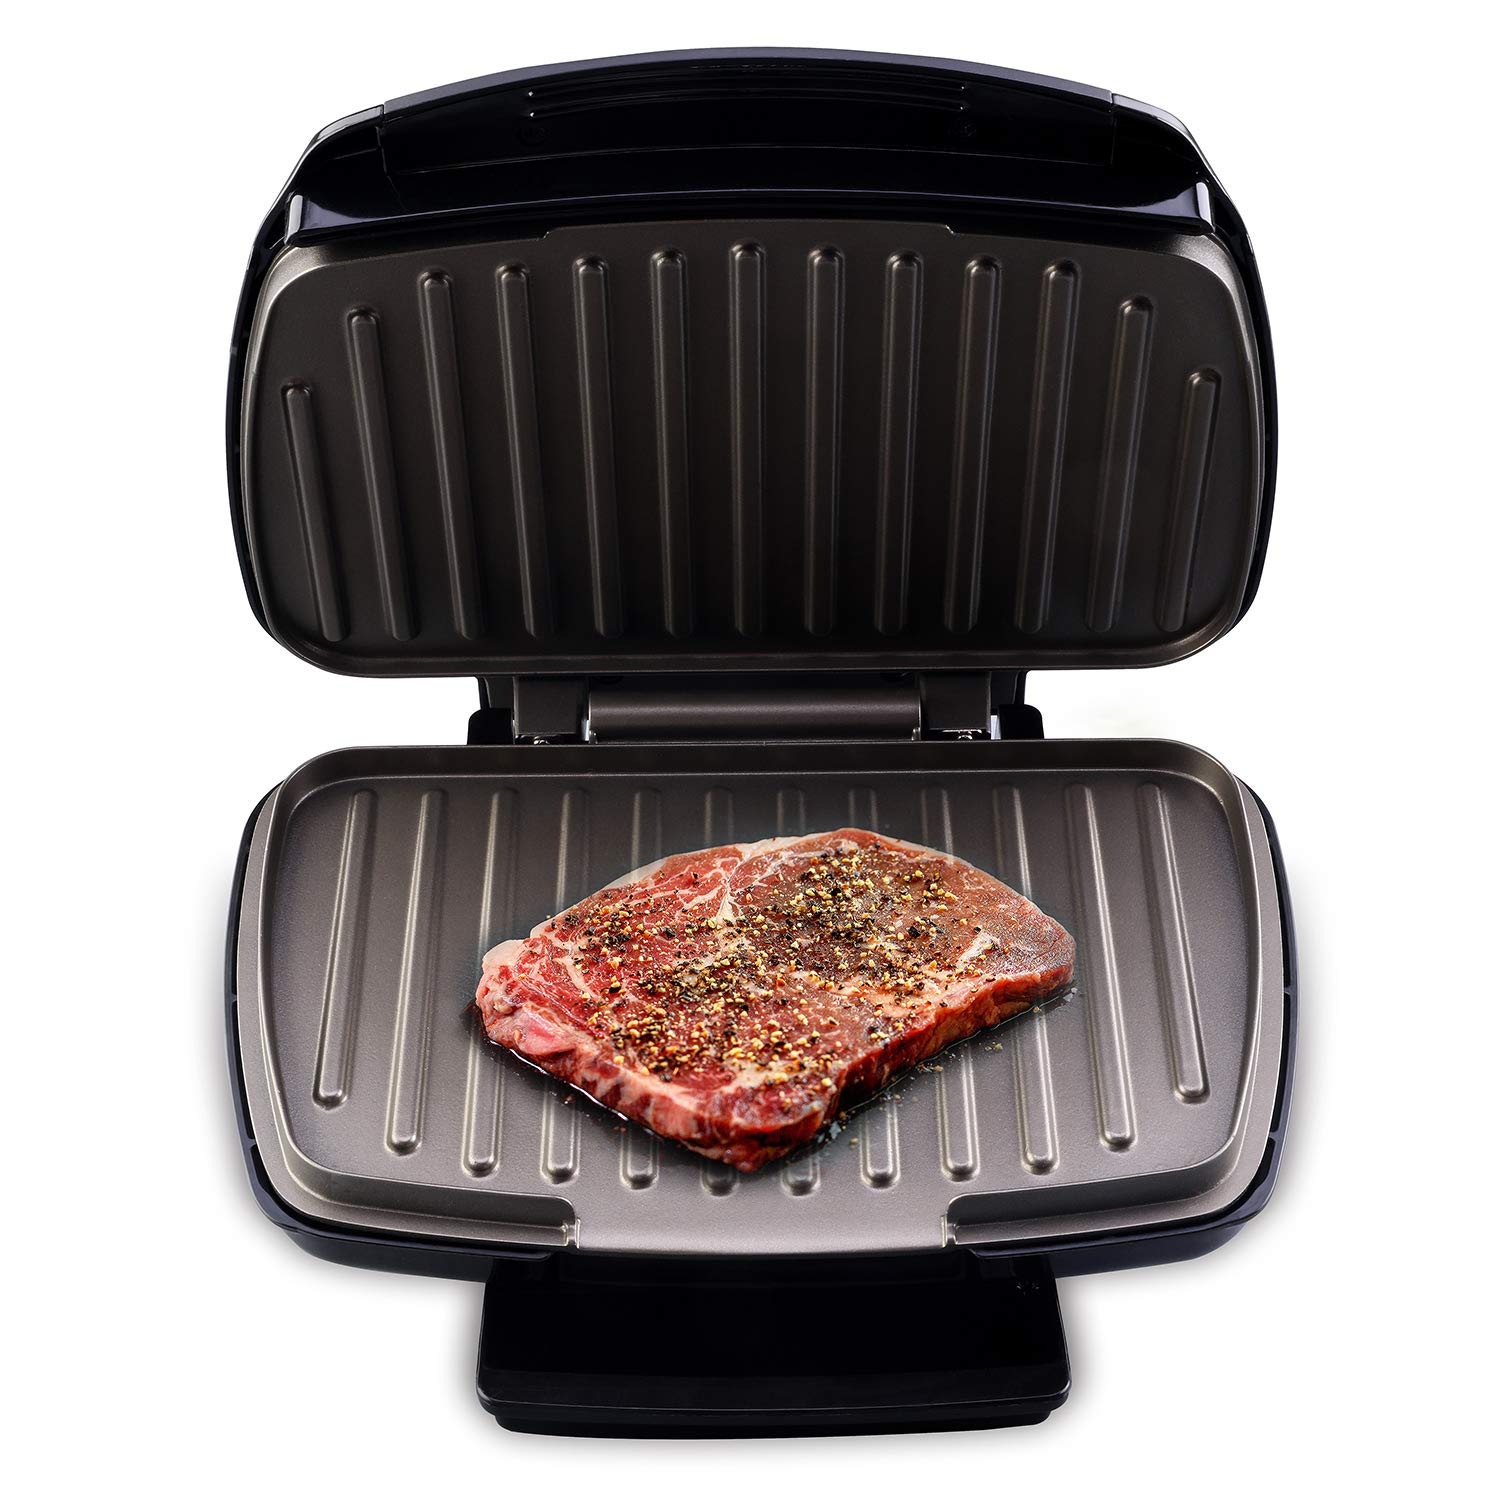 Health and Home 2-Serving Classic Plate Grill and Pannini Press, Black